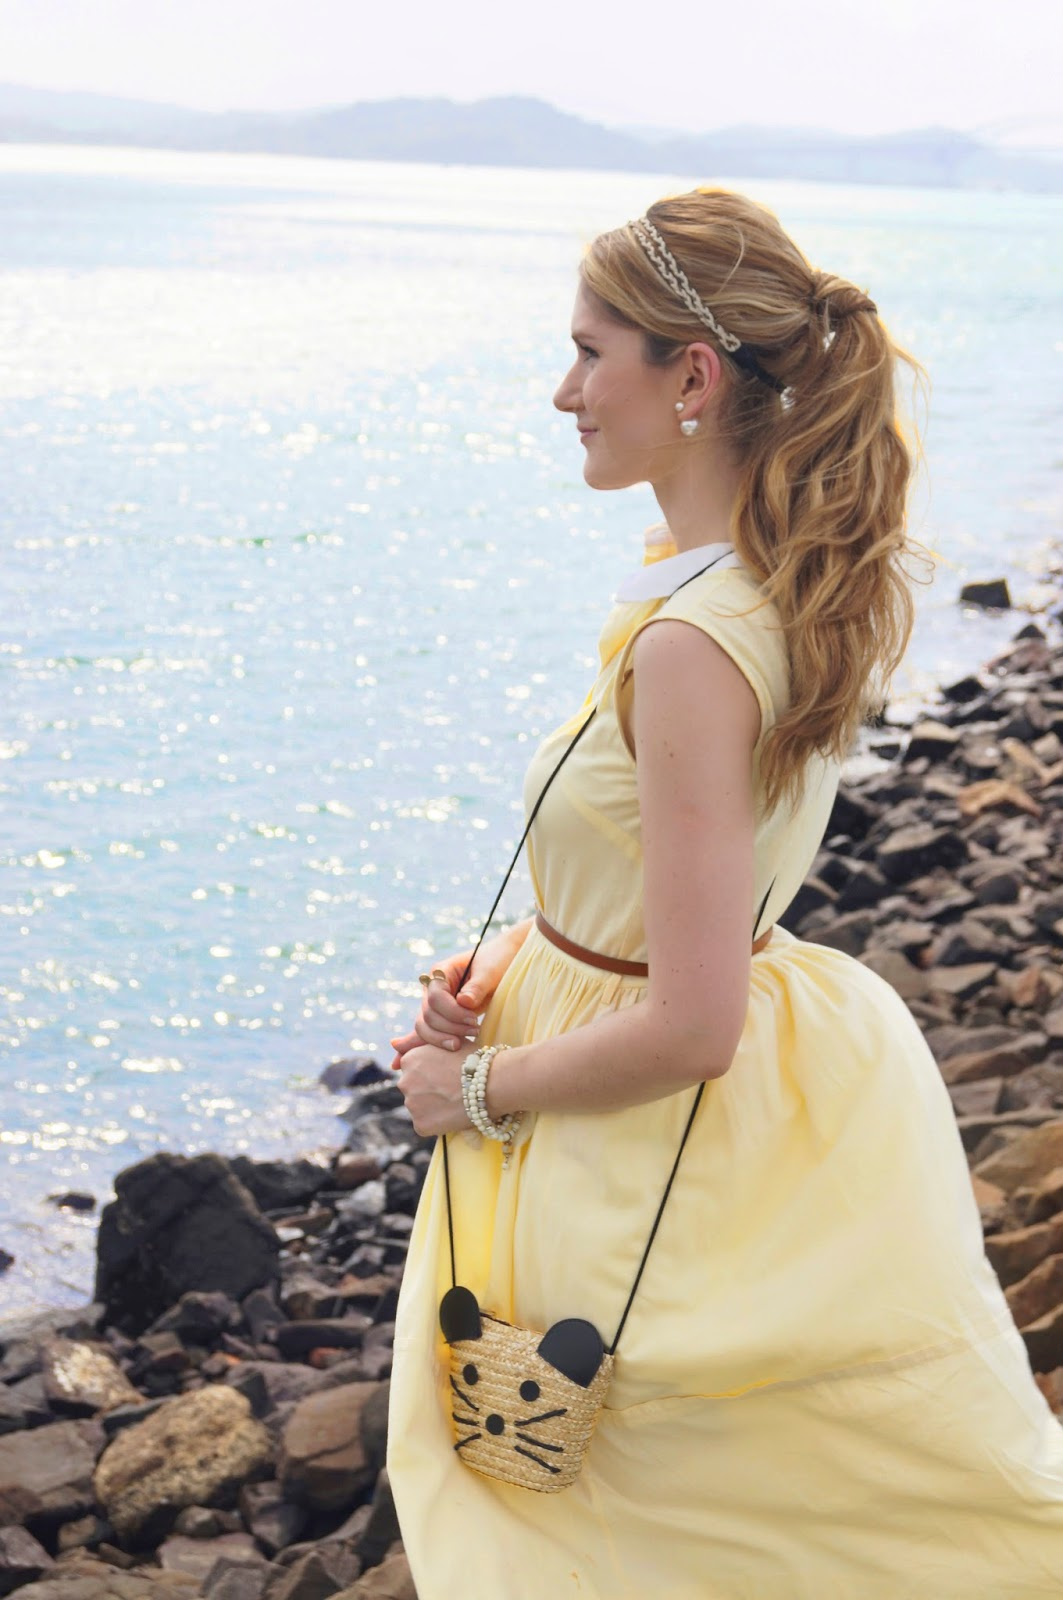 Add a headband to your ponytail for a quick and easy summer hairstyle!